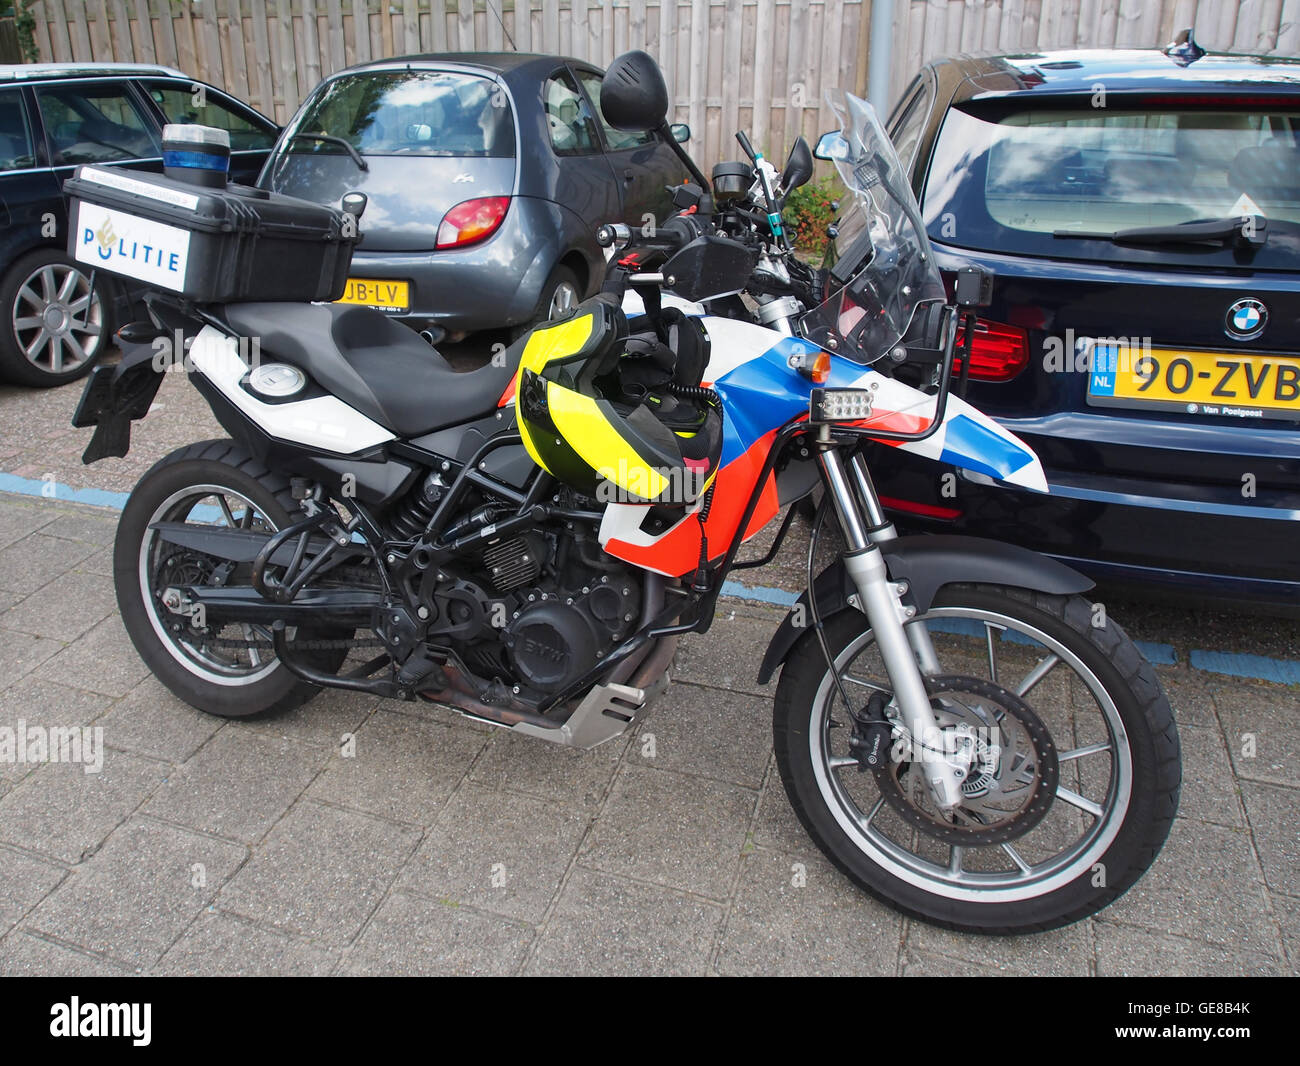 hight resolution of bmw police motorcycle in hoofddorp pic2